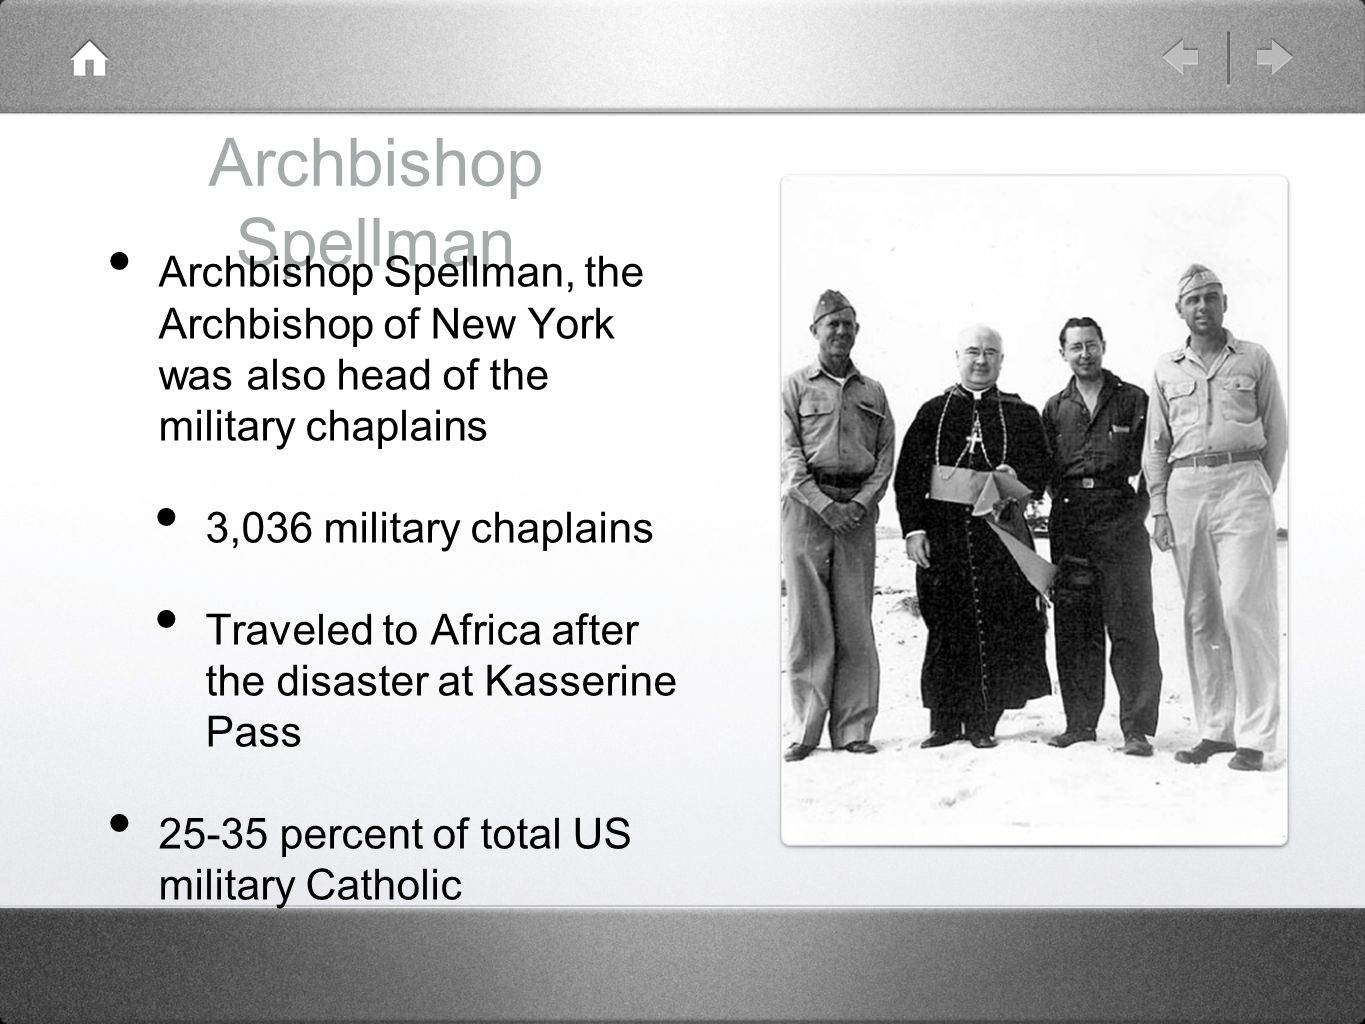 Archbishop Spellman Archbishop Spellman, the Archbishop of New York was also head of the military chaplains.